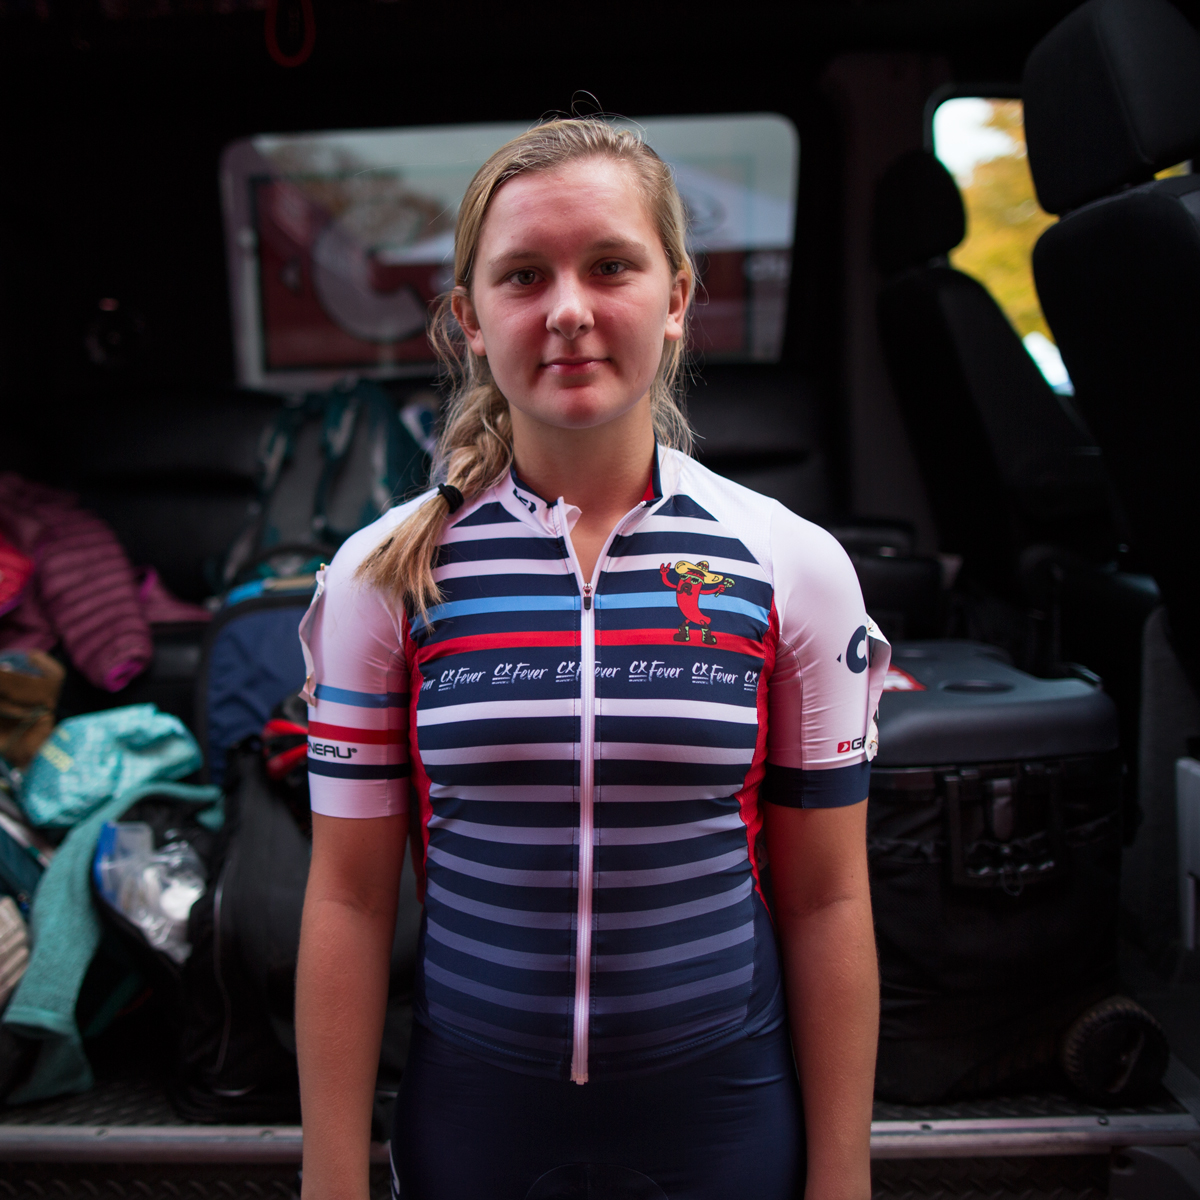 """I want to learn everything there is to know about the sport of cyclocross! Like I do in school, I really love to ask my coach, mentors, etc. questions about cycling. I think it's extremely important to utilize every resource available to you in order to excel in any given talent."" - Hannah Bauer"